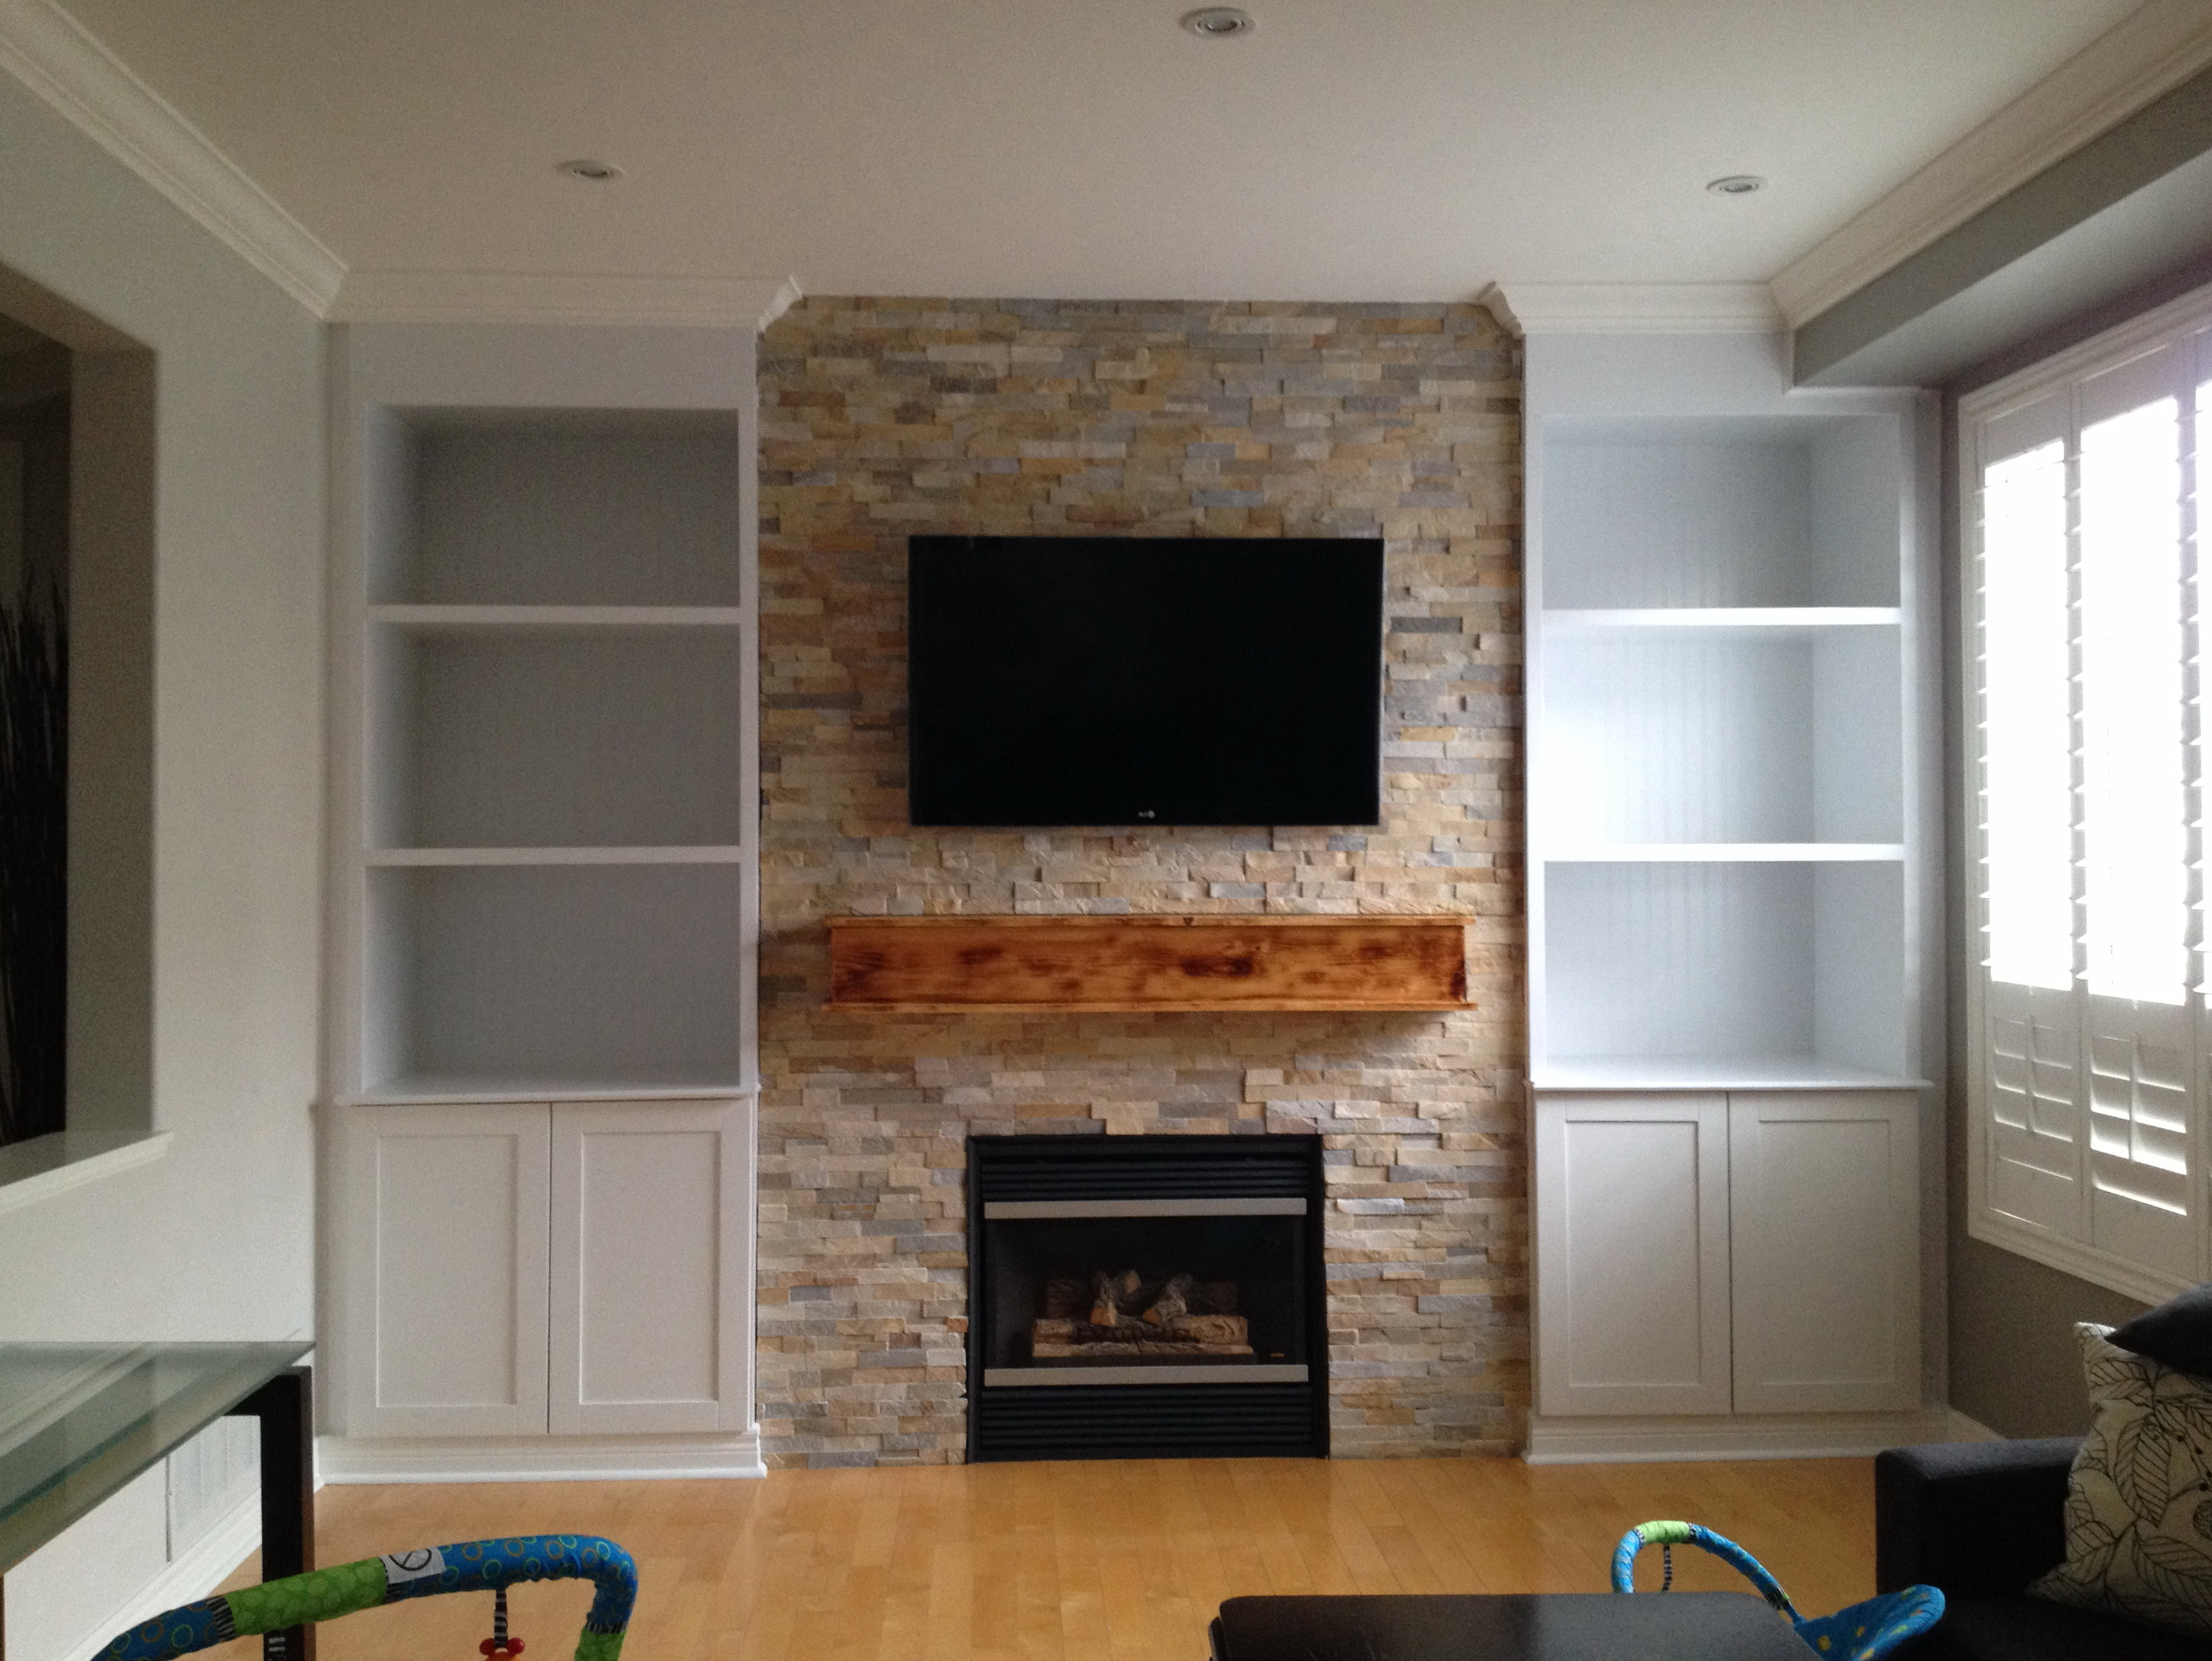 photos surround cultured case natural stone services in study built ottawa fireplaces fireplace masonry gas casestudy techniques